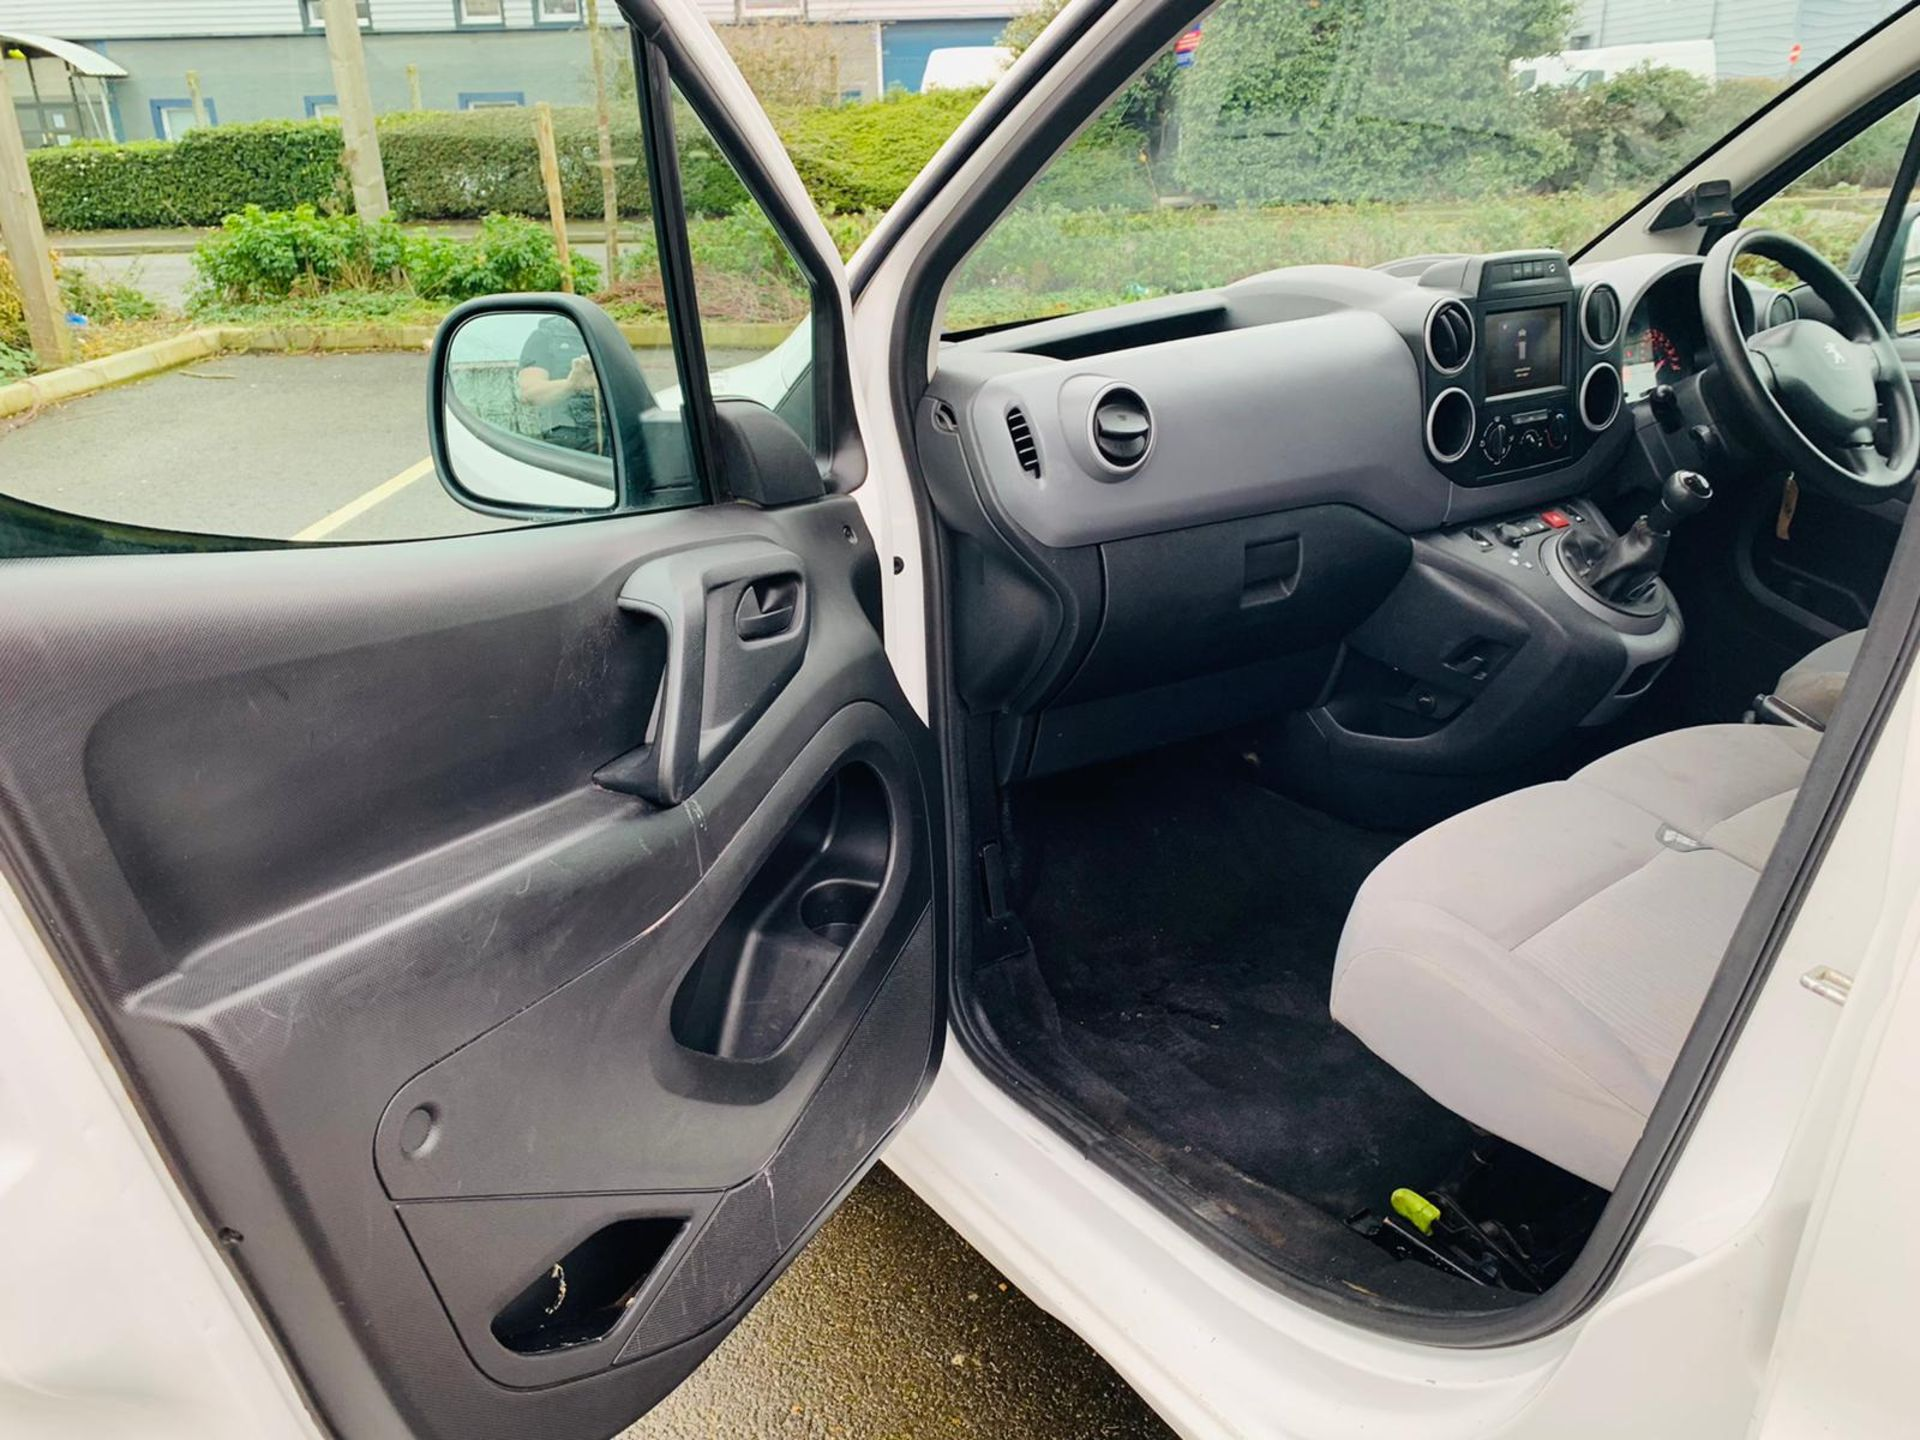 (RESERVE MET) Peugeot Partner 1.6 HDI Professional - 2017 Model - Air Con - Service History - Image 16 of 22